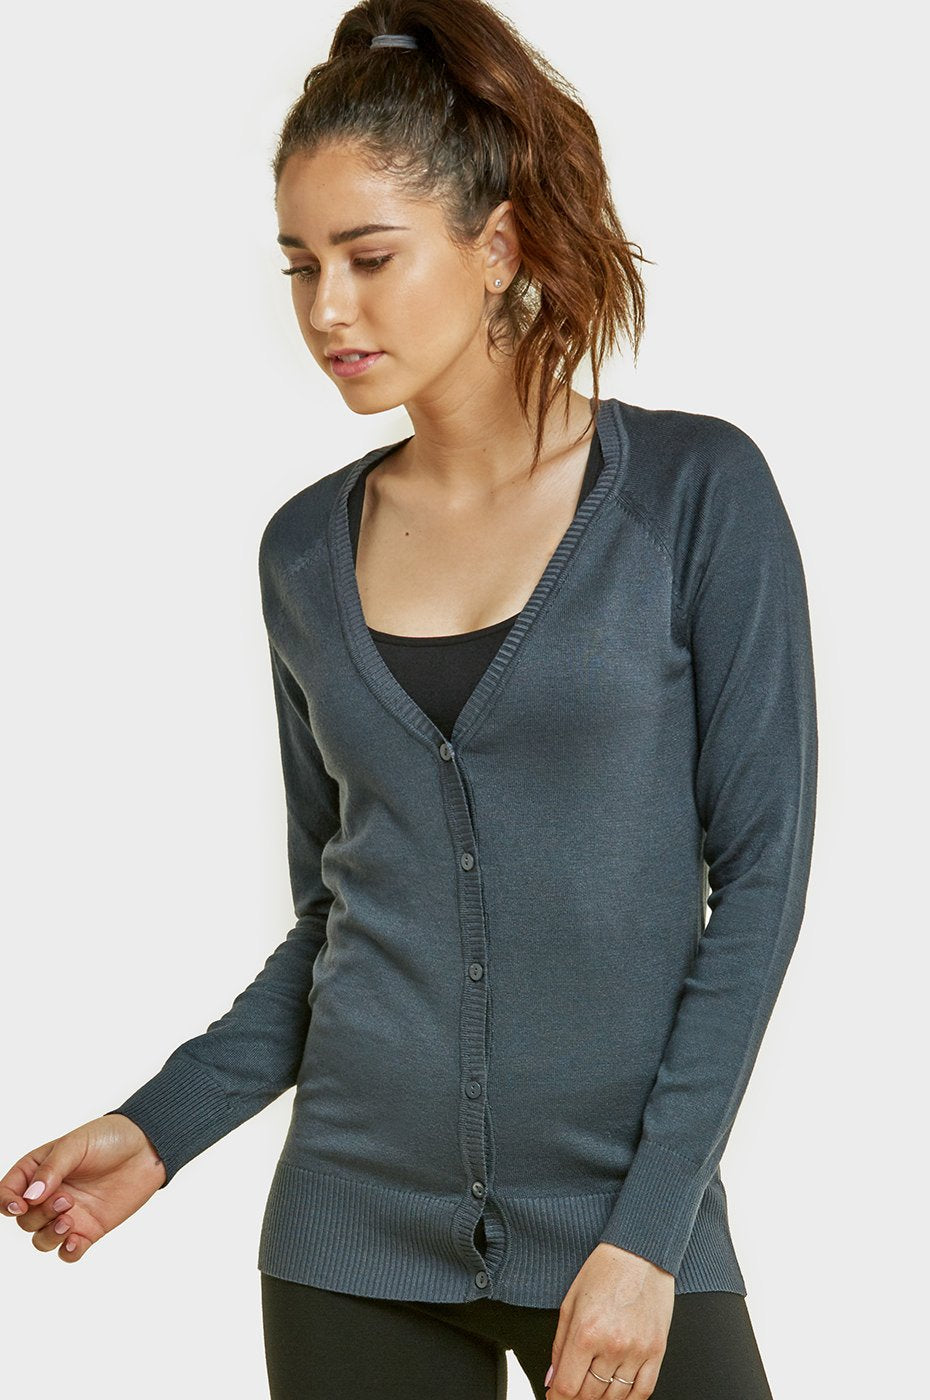 Ladies Rayon Cardigan W/ Buttons